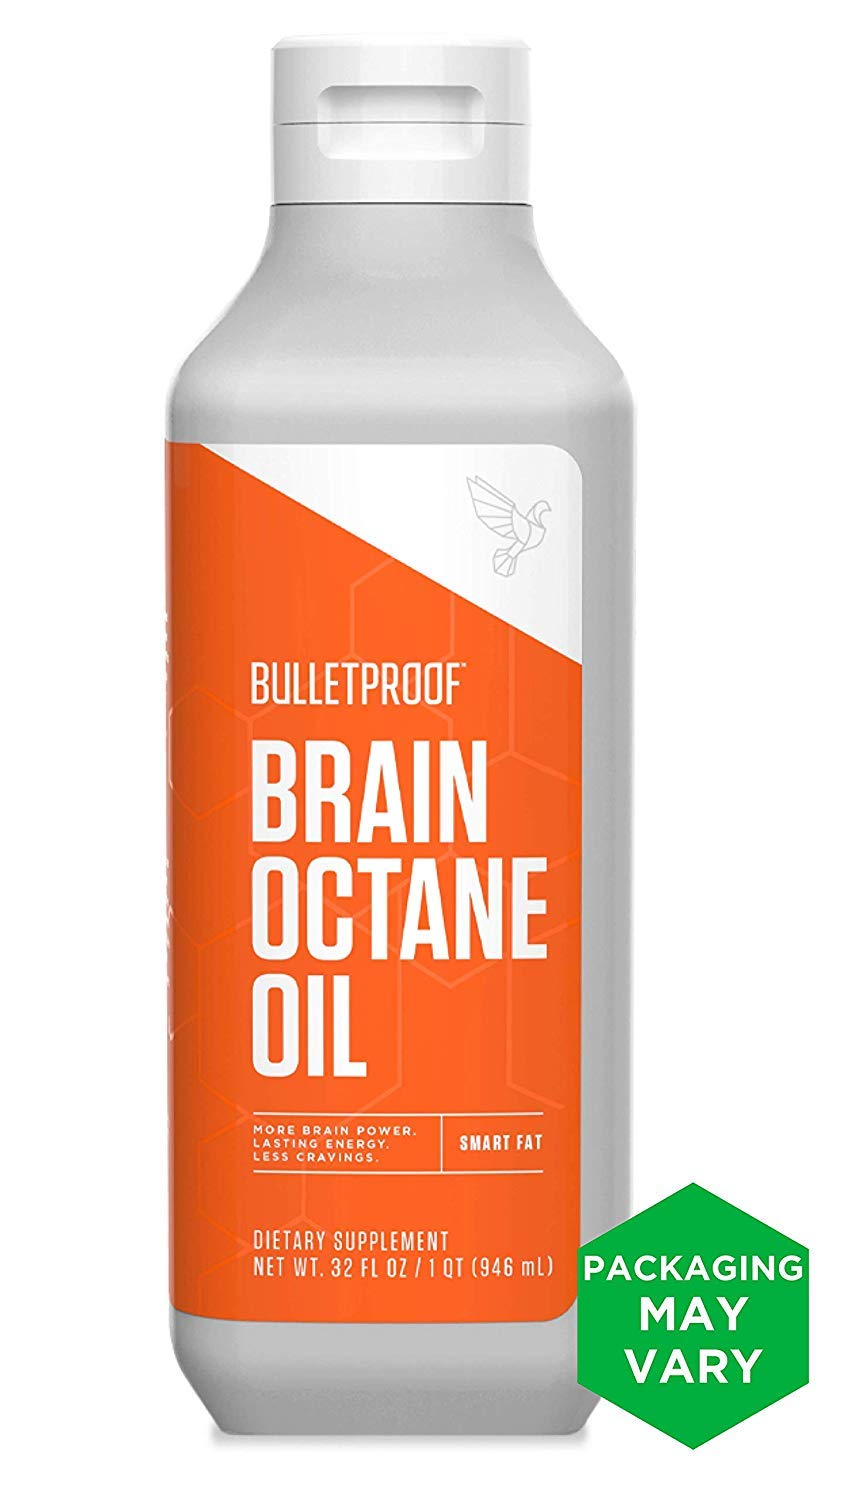 Bulletproof Brain Octane MCT Oil, Perfect for Keto and Paleo Diet, 100% Non-GMO Premium C8 Oil, Ketogenic Friendly, Responsibly Sourced from Coconuts Only, Made in The USA, 32 Fl. Oz by Bulletproof